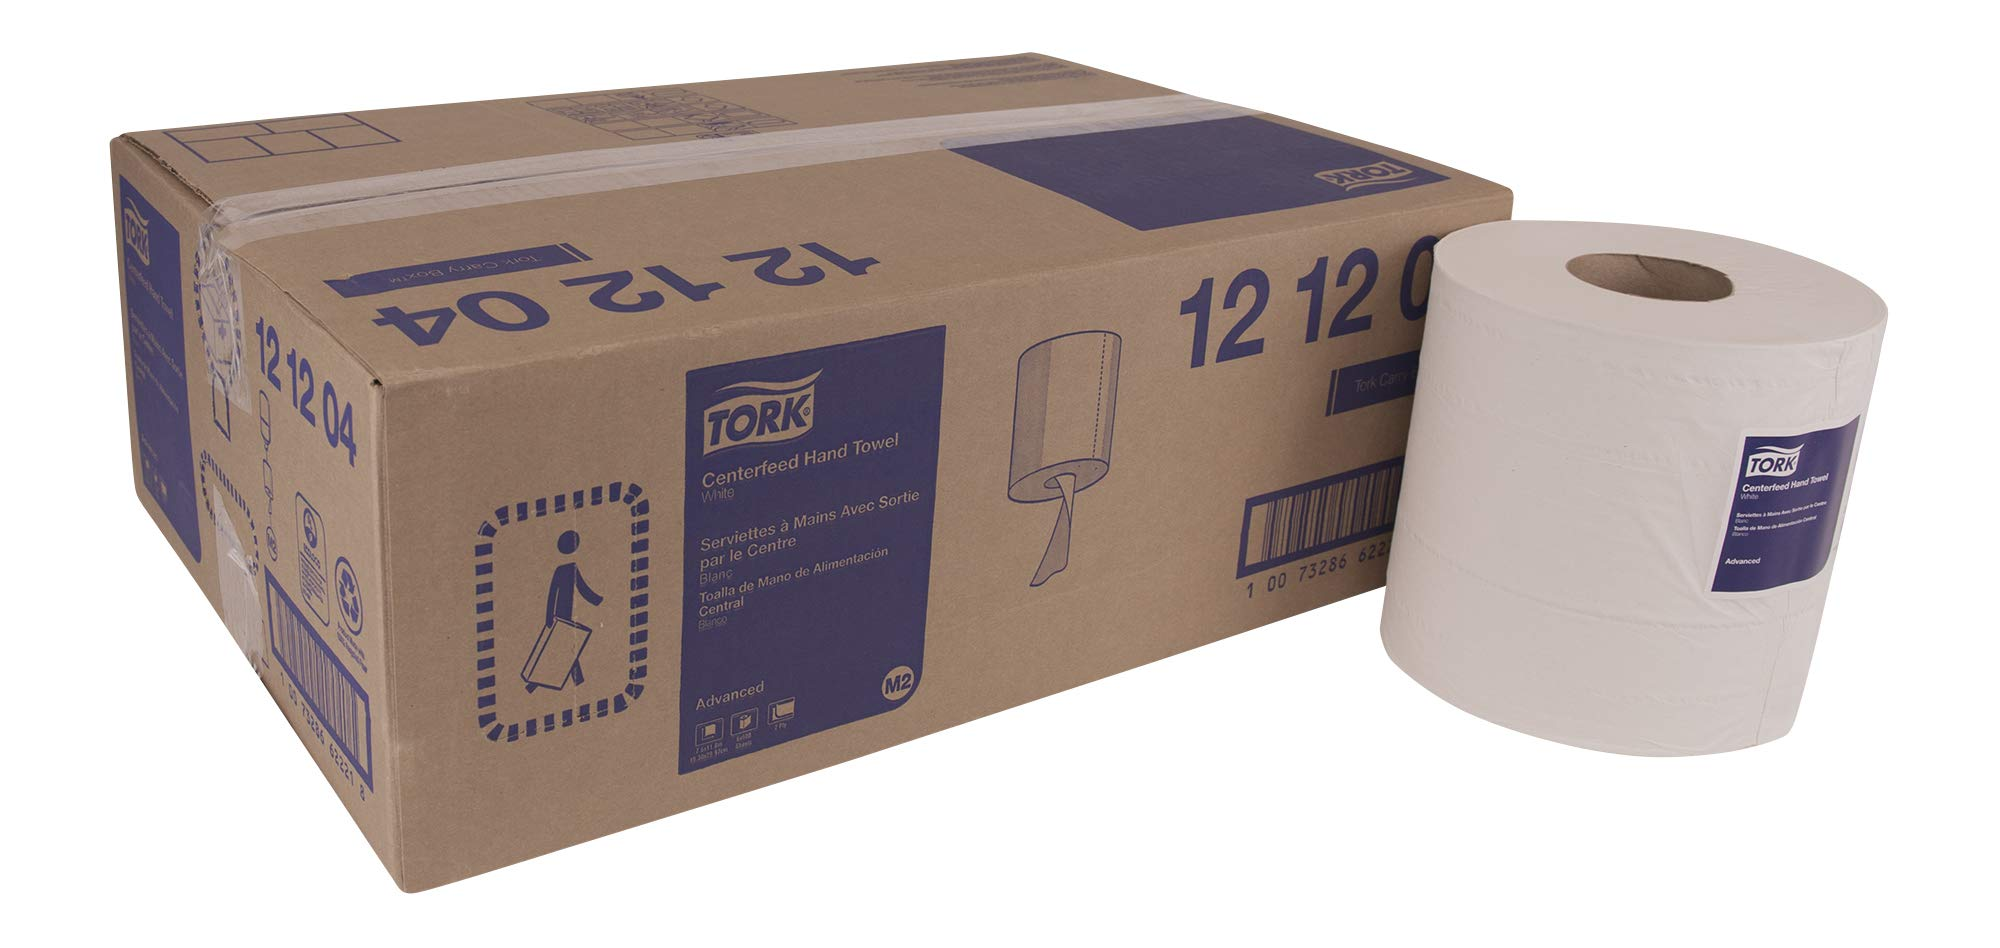 Tork Advanced 121204 Soft Centerfeed Hand Towel, 2-Ply, 7.6'' Width x 11.8'' Length, White (Case of 6 Rolls, 600 per Roll, 3,600 Towels) for use with Tork 559020A or 559028A by Tork